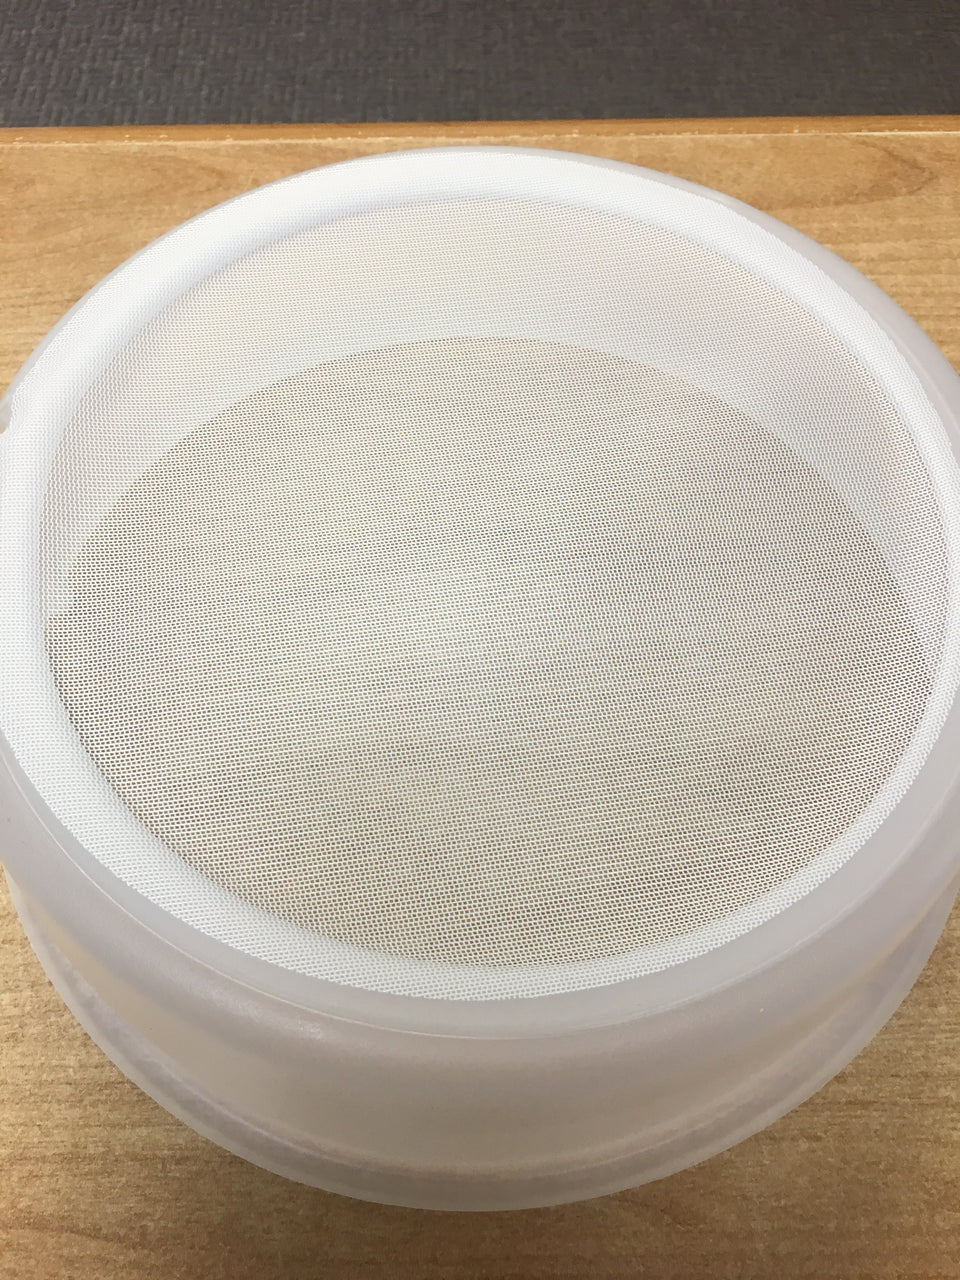 BZ600 Micron Filter (Course)